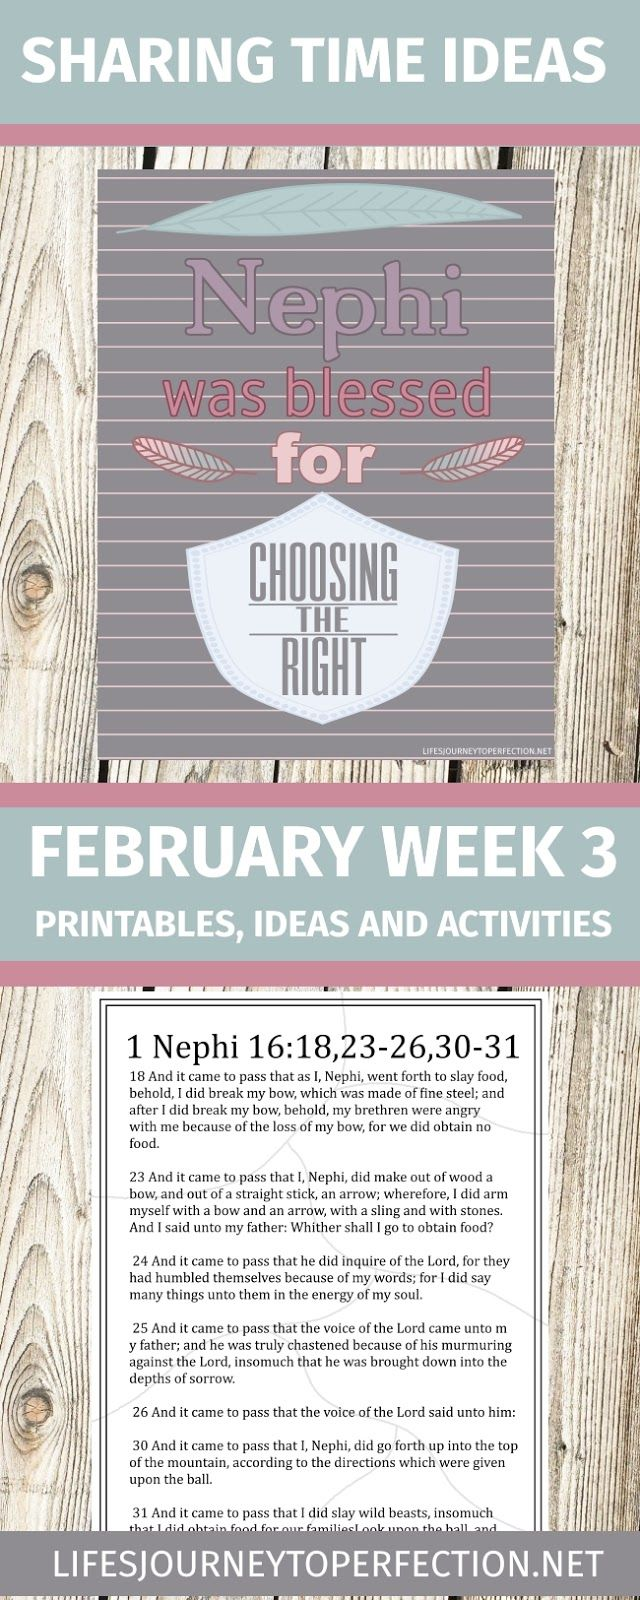 2017 LDS Sharing Time Ideas for February Week 3: Nephi was blessed for choosing the right.